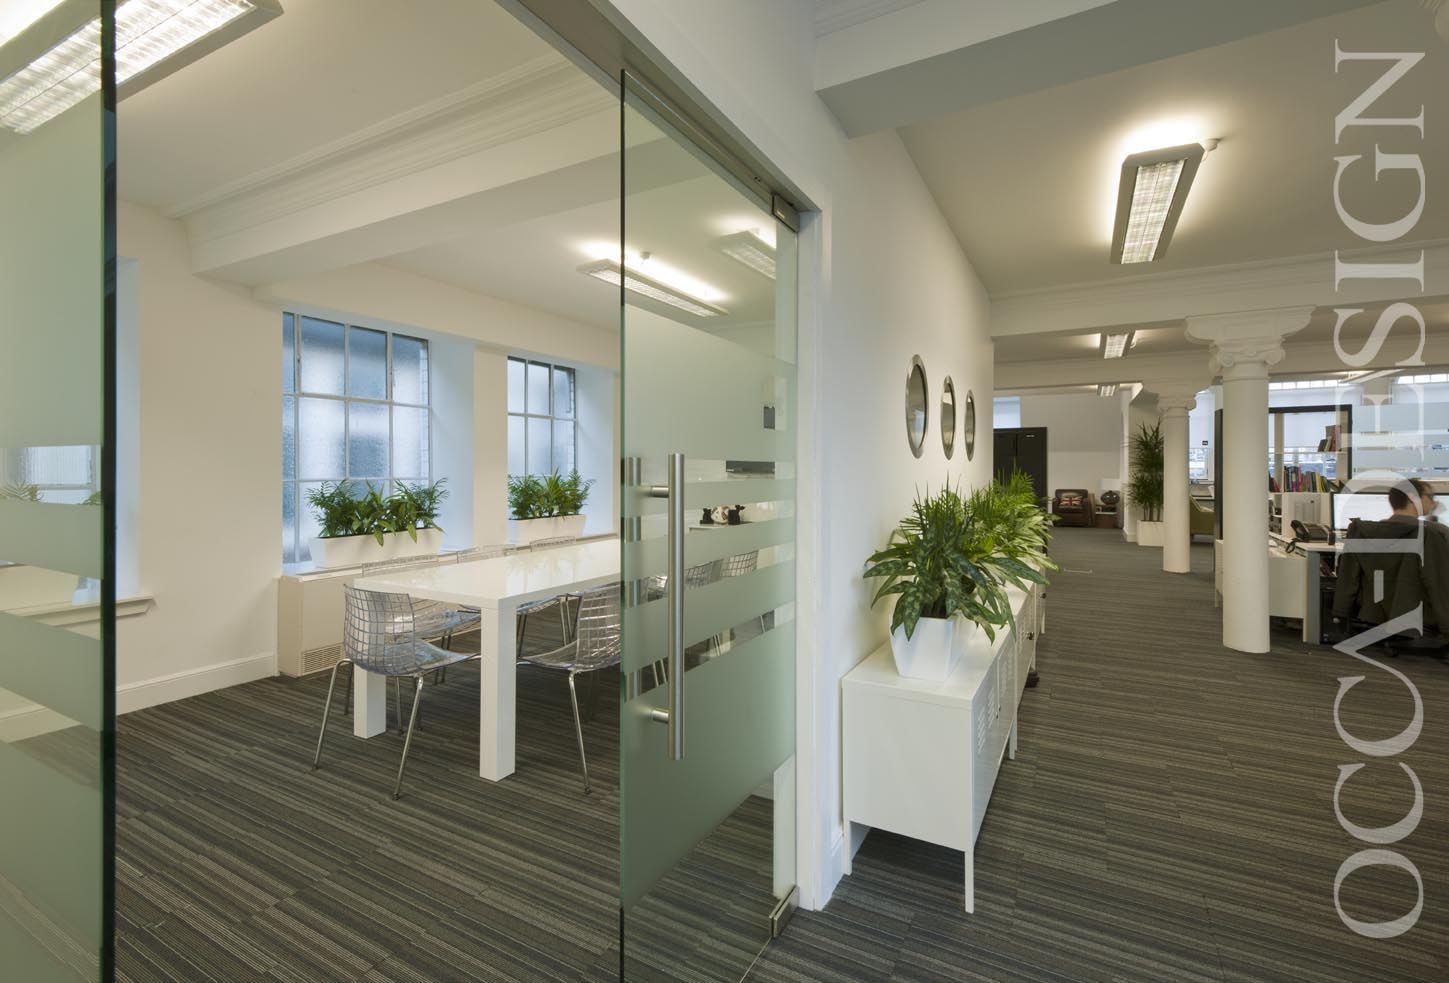 Digital Marketing Offices Office Interior Design Glasgow Listed Building Contemporary